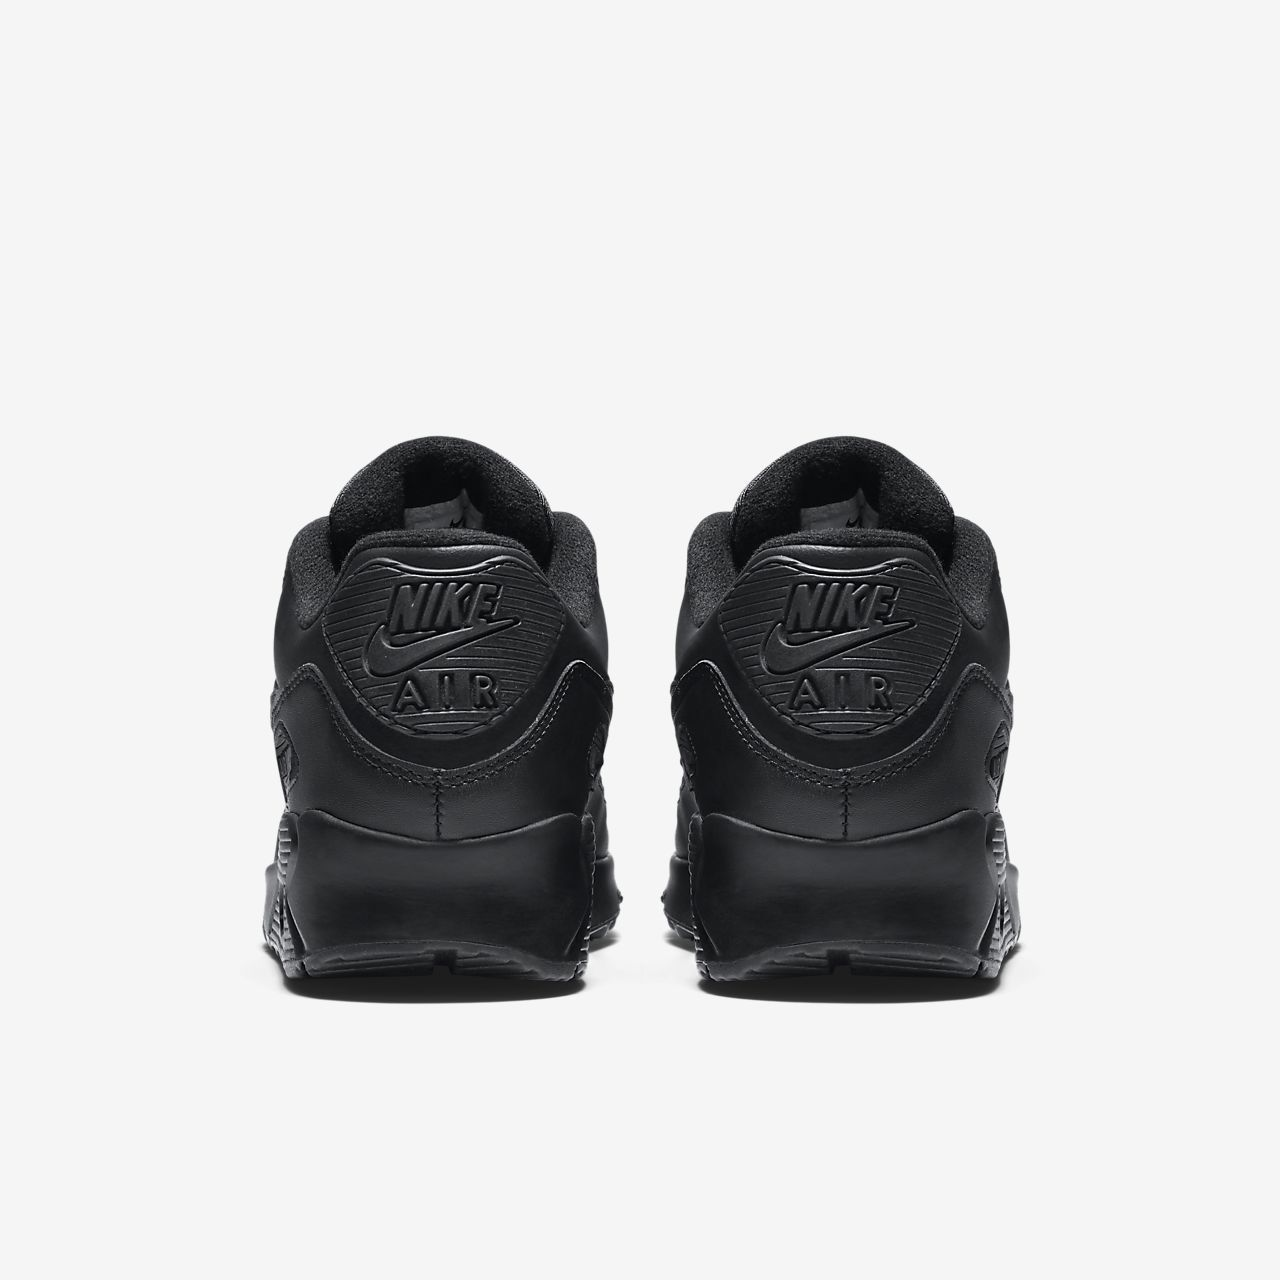 hot sale online 4d328 f7f76 Air Max 90 Leather Men's Shoe | adidas | Air max 90 leather ...